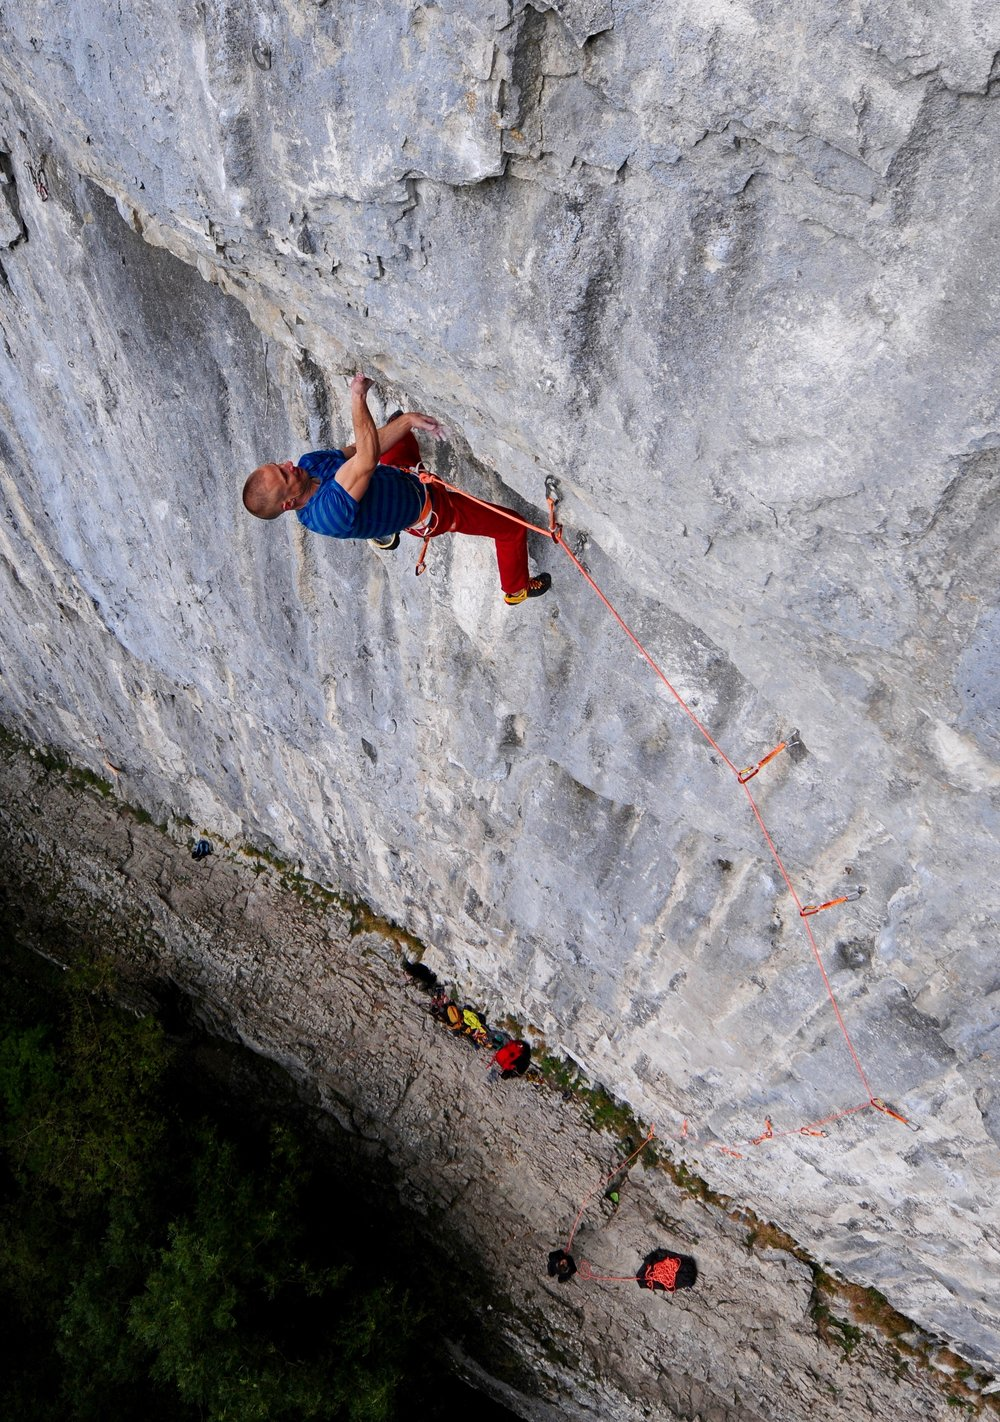 Sabotage 8c+, Malham Cove, UK.  Photo: Ian Parnell